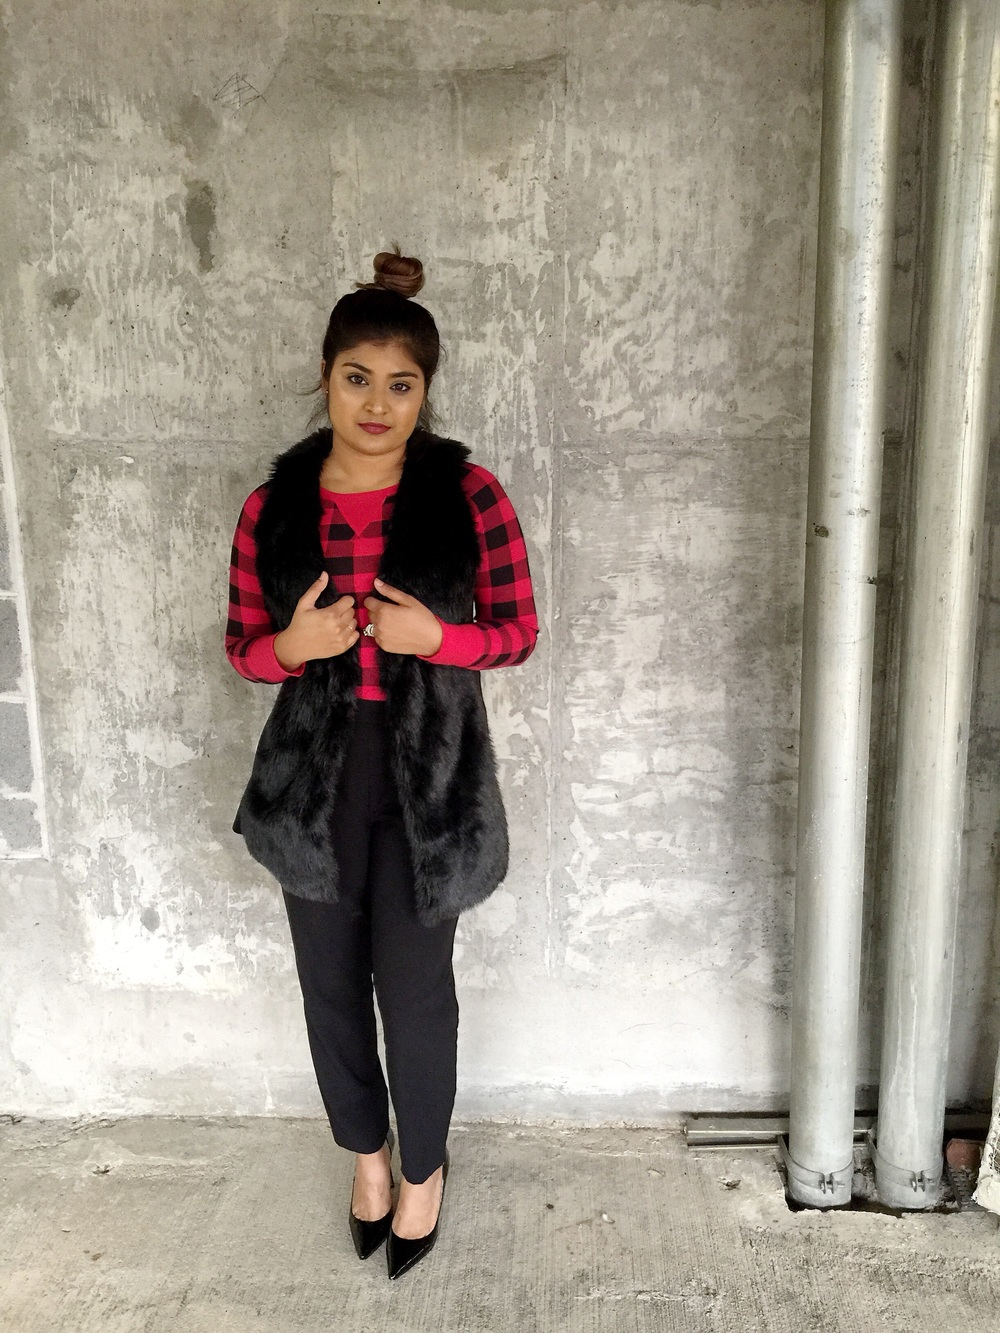 Top Bun, Faux Fur + Plaid | Fashion Blogger - by: Vashti Co.